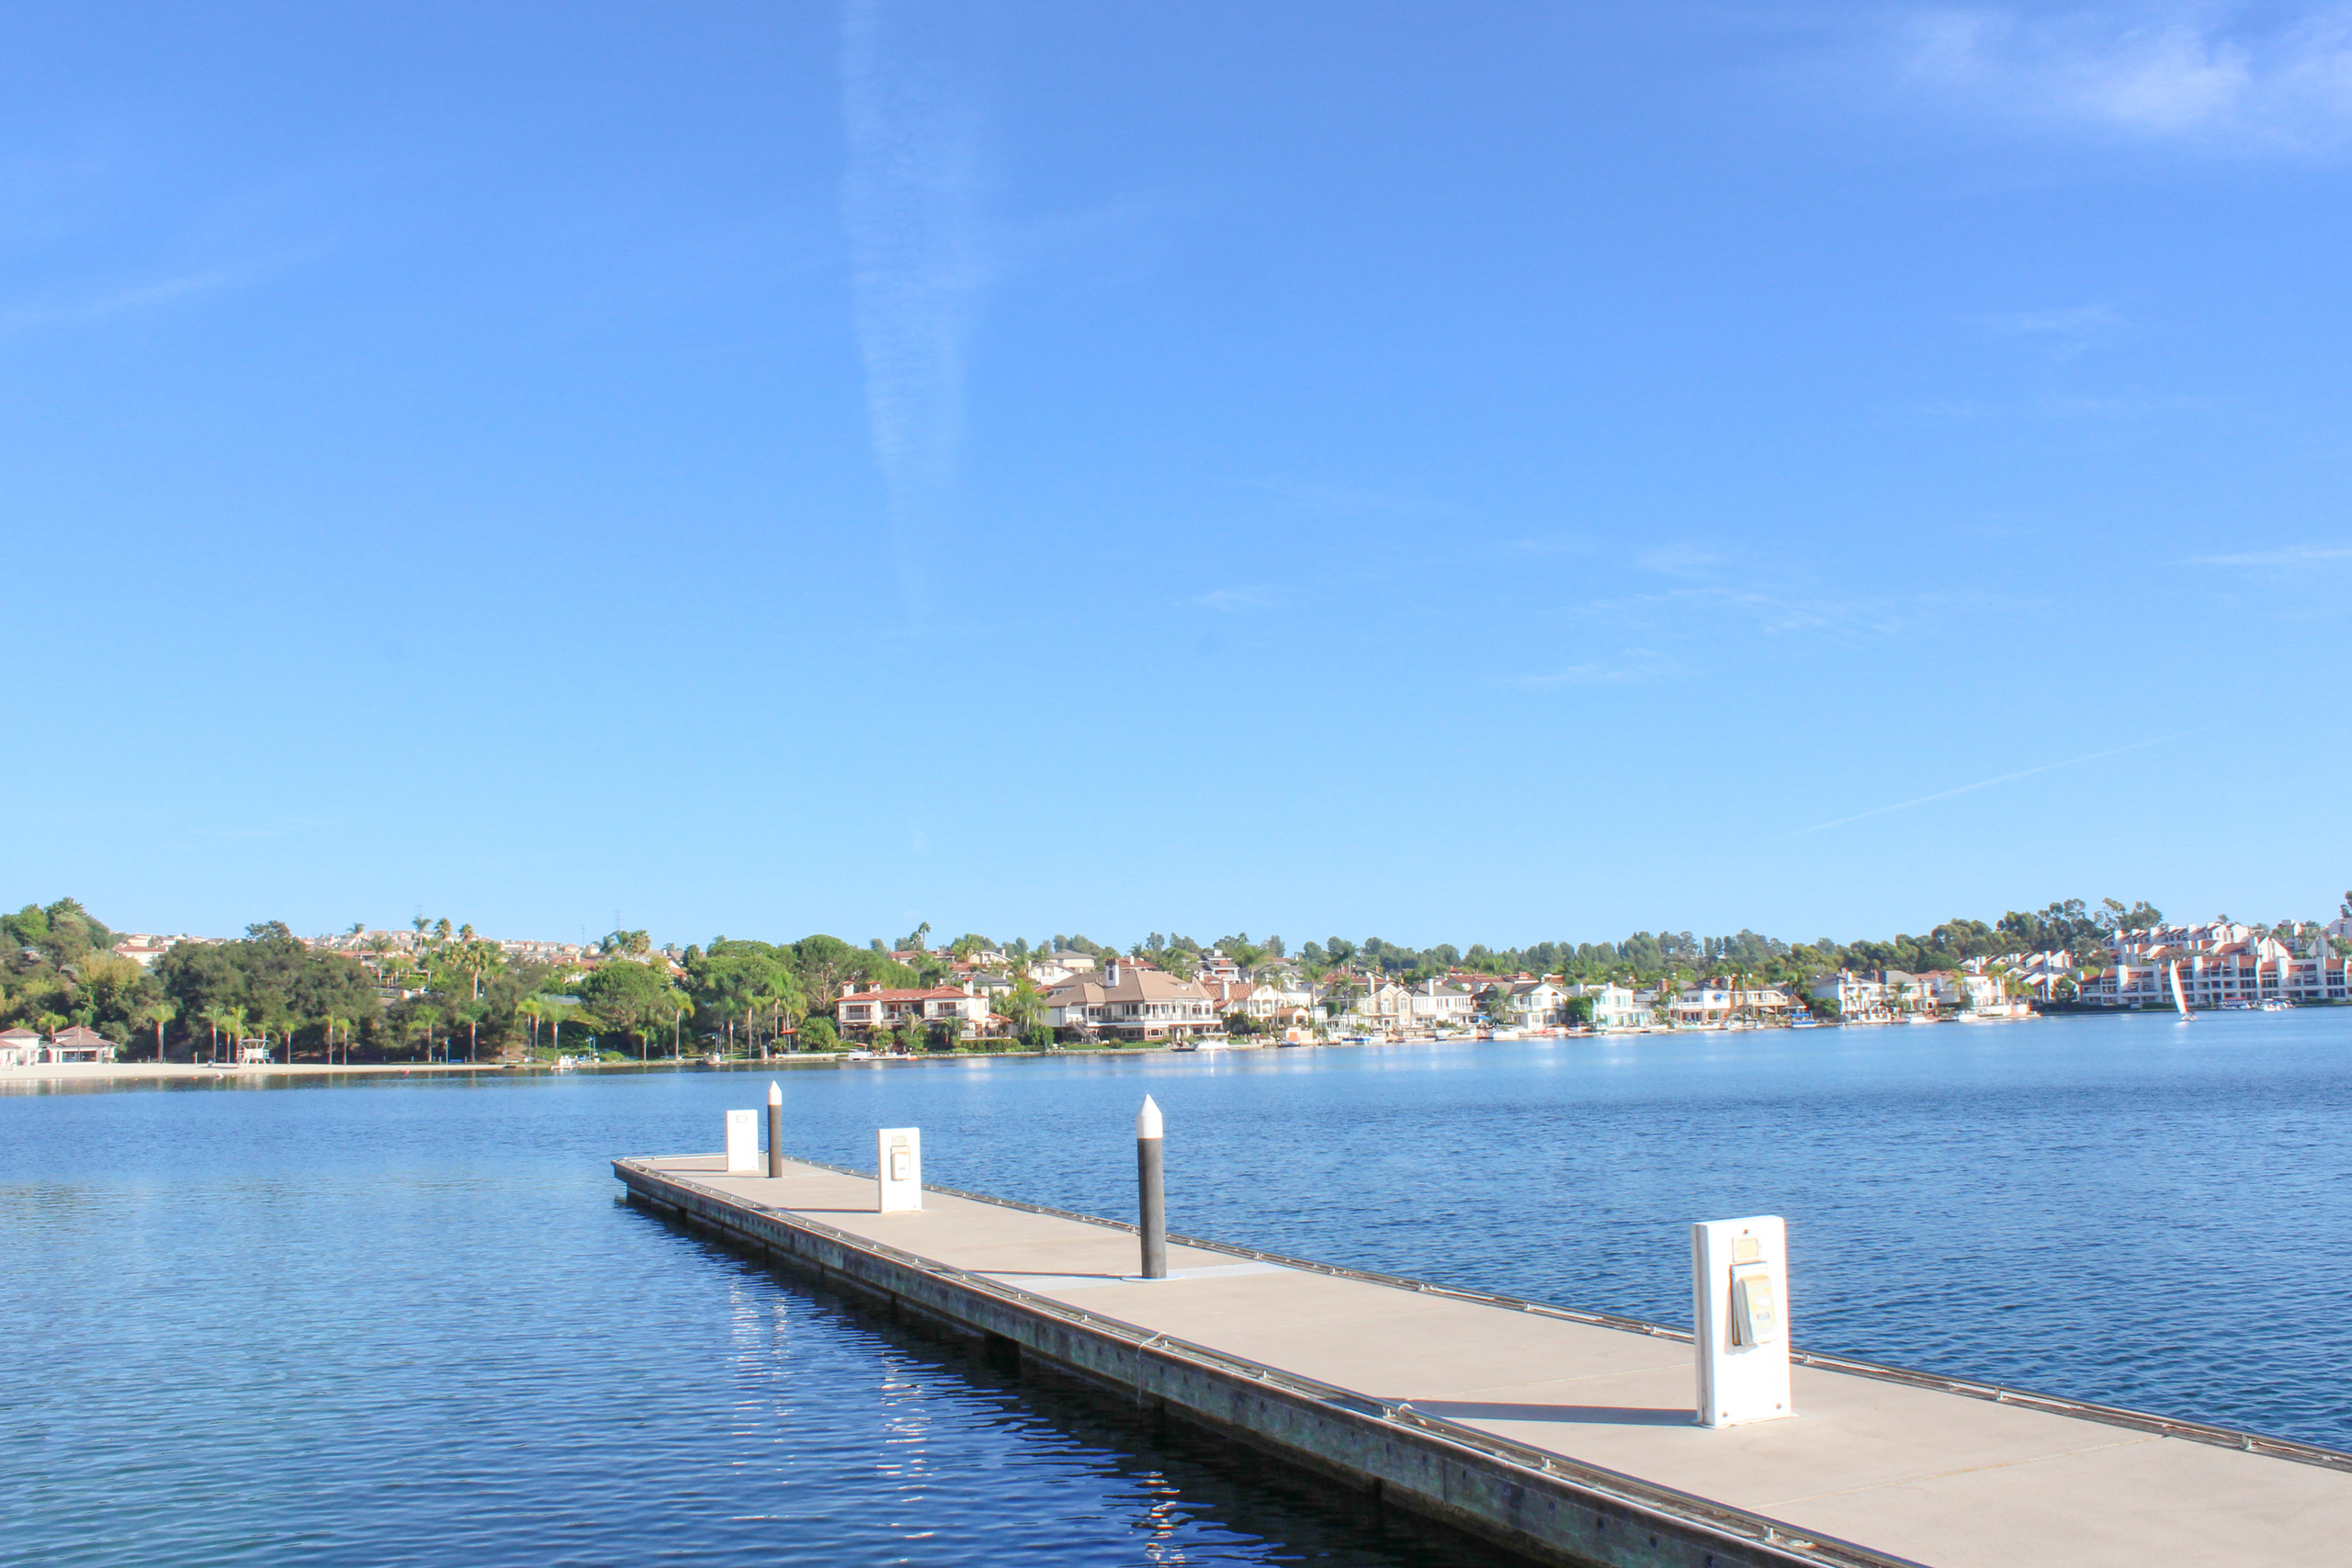 1106110-Mission_Viejo_Lake_3